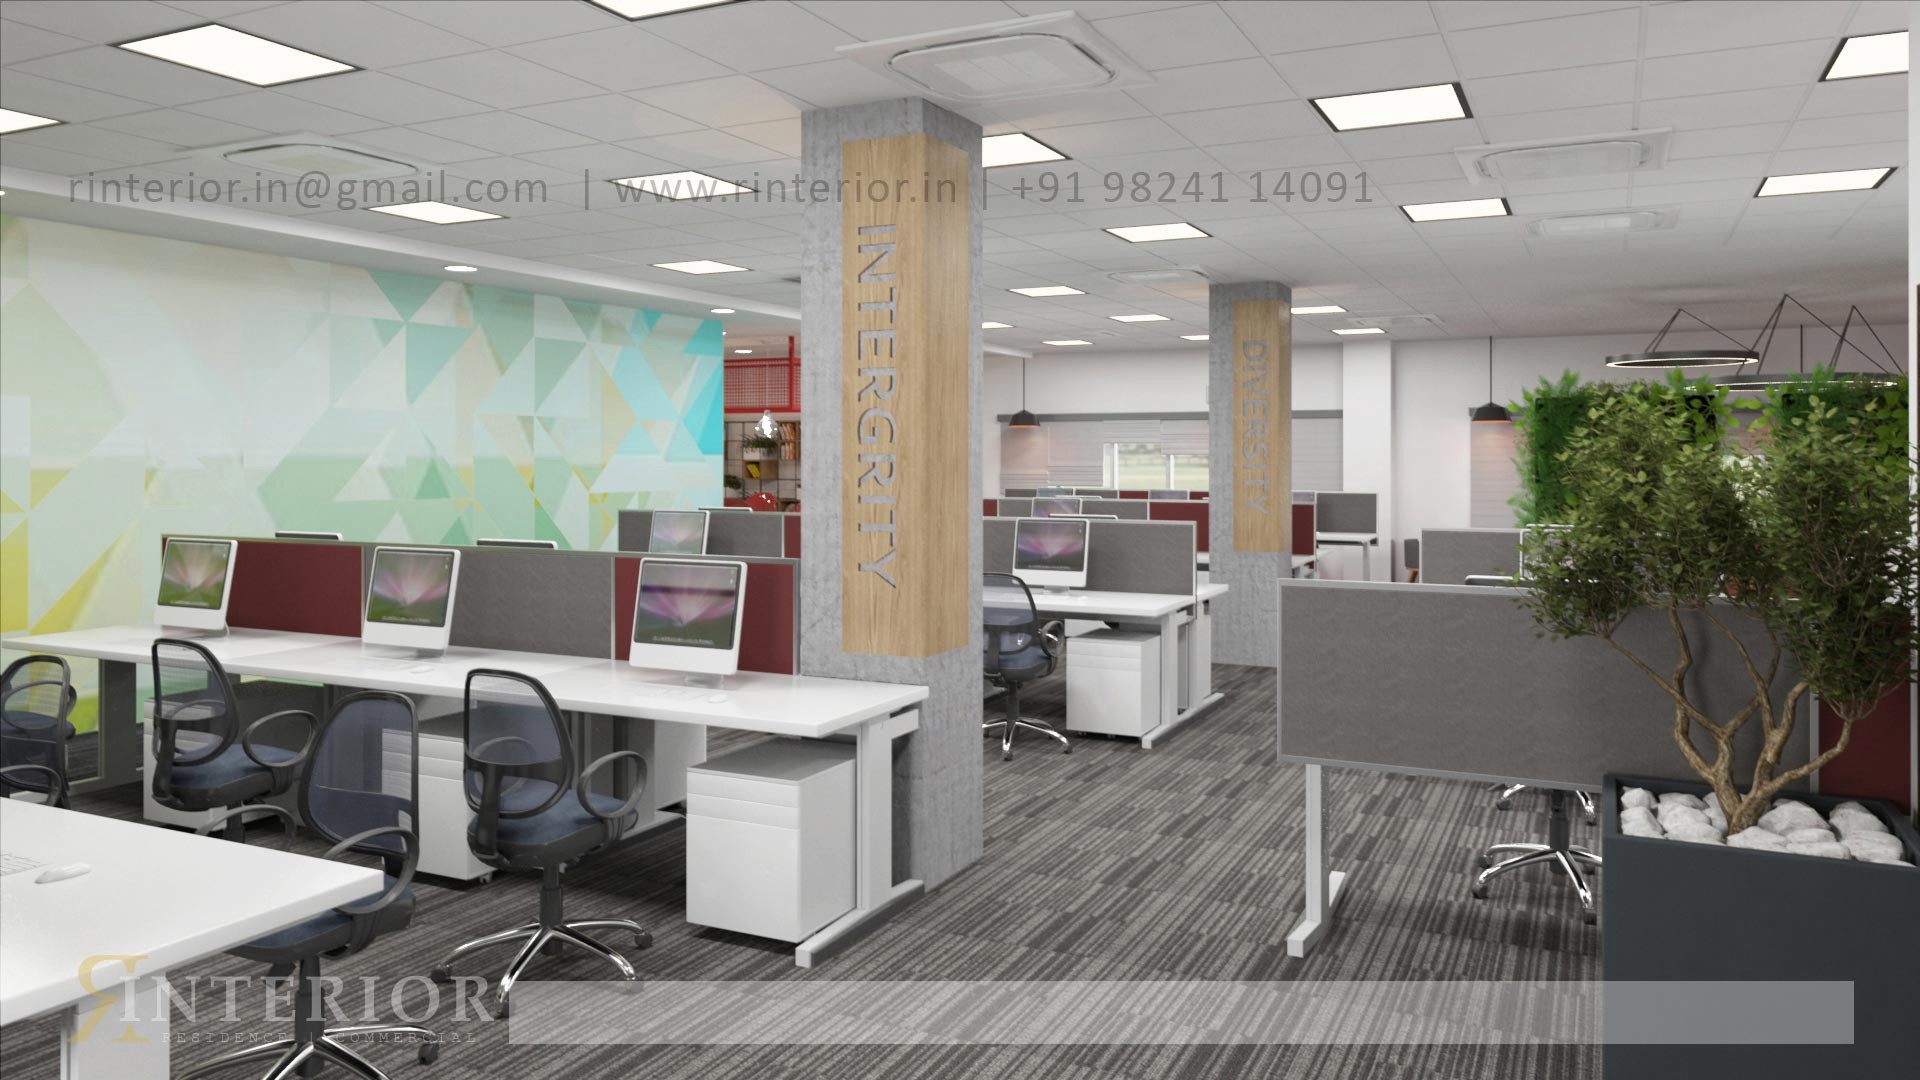 Most Important Interior Design Concept In Ahmedabad By R Interior Medium